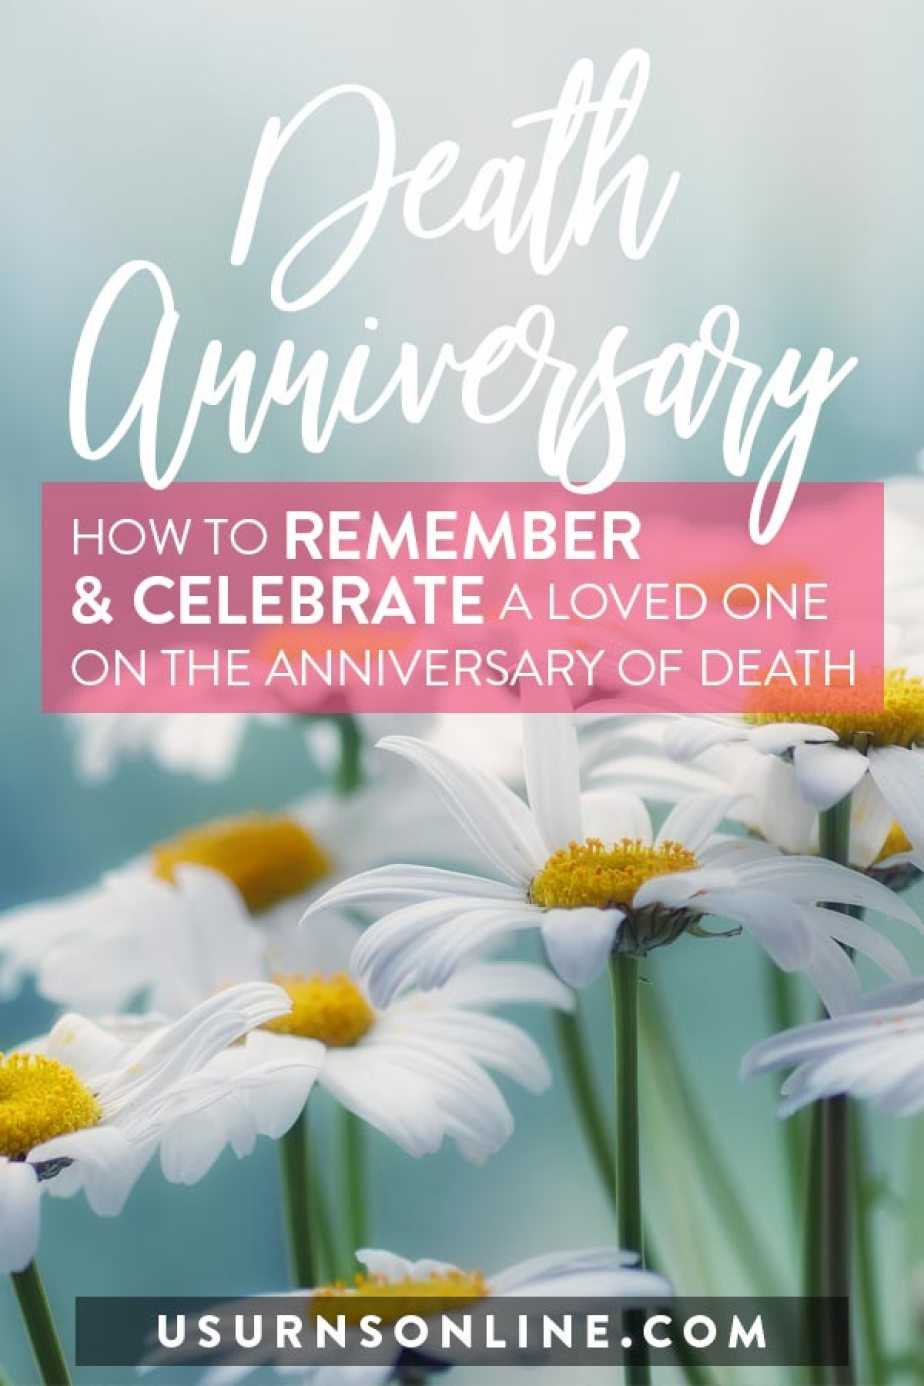 Death Anniversary: How to Remember & Celebrate Your Loved One » Urns | Online